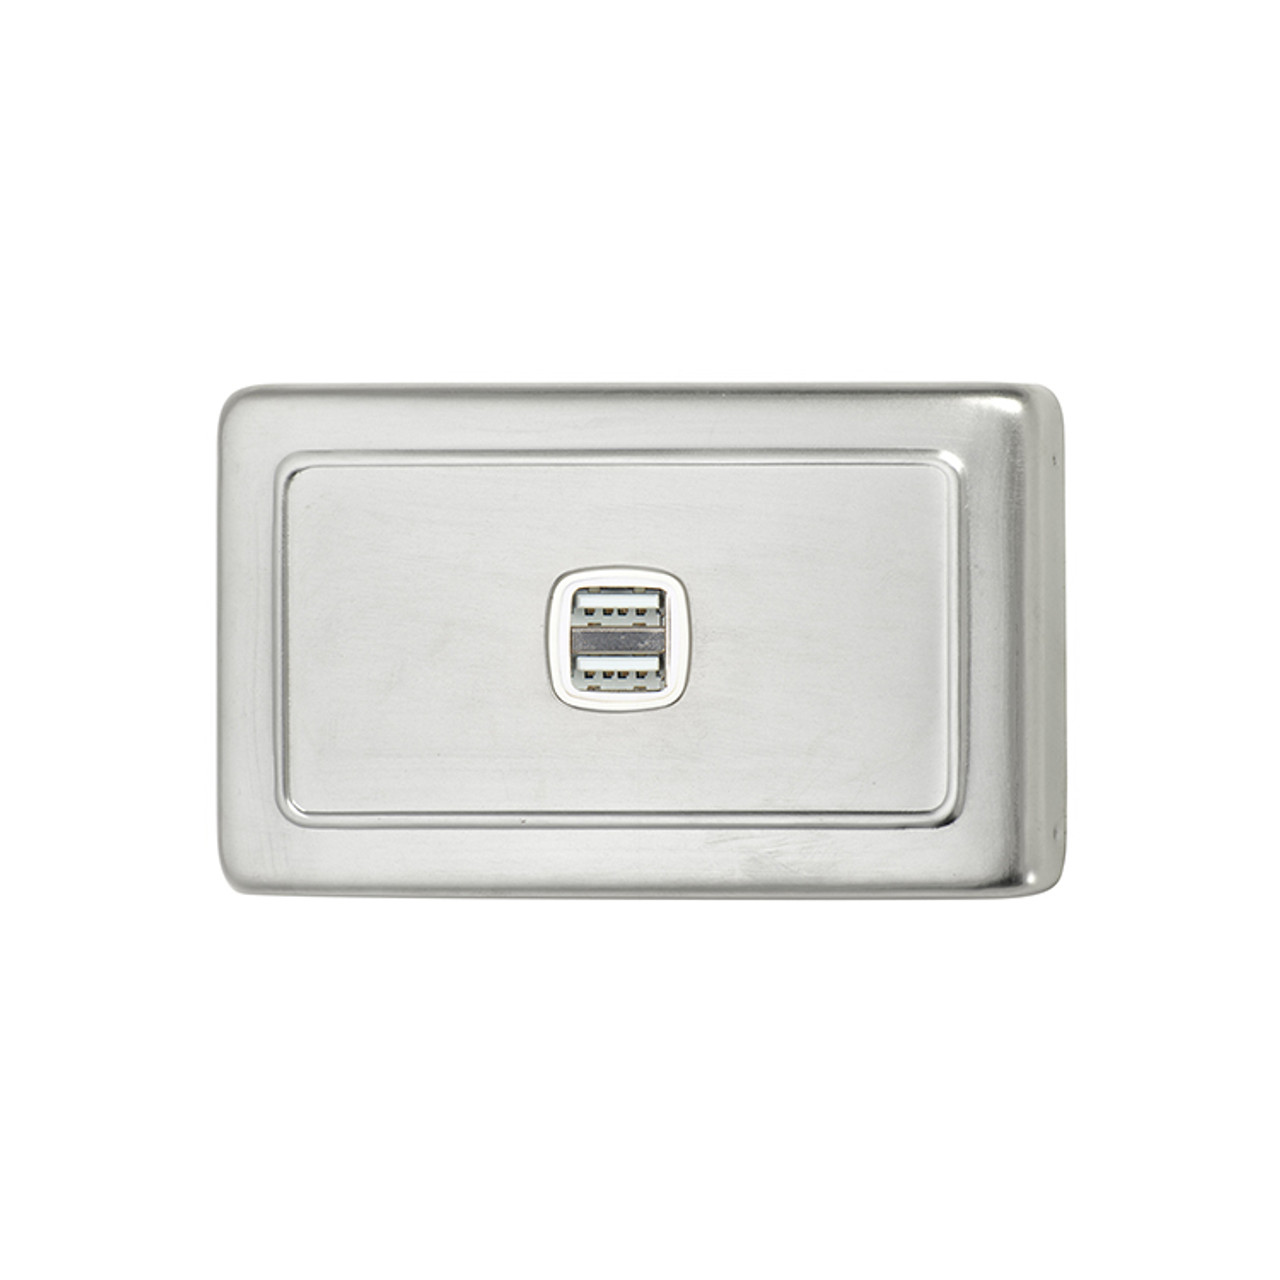 Satin Chrome USB Outlet Horizontal Aspect